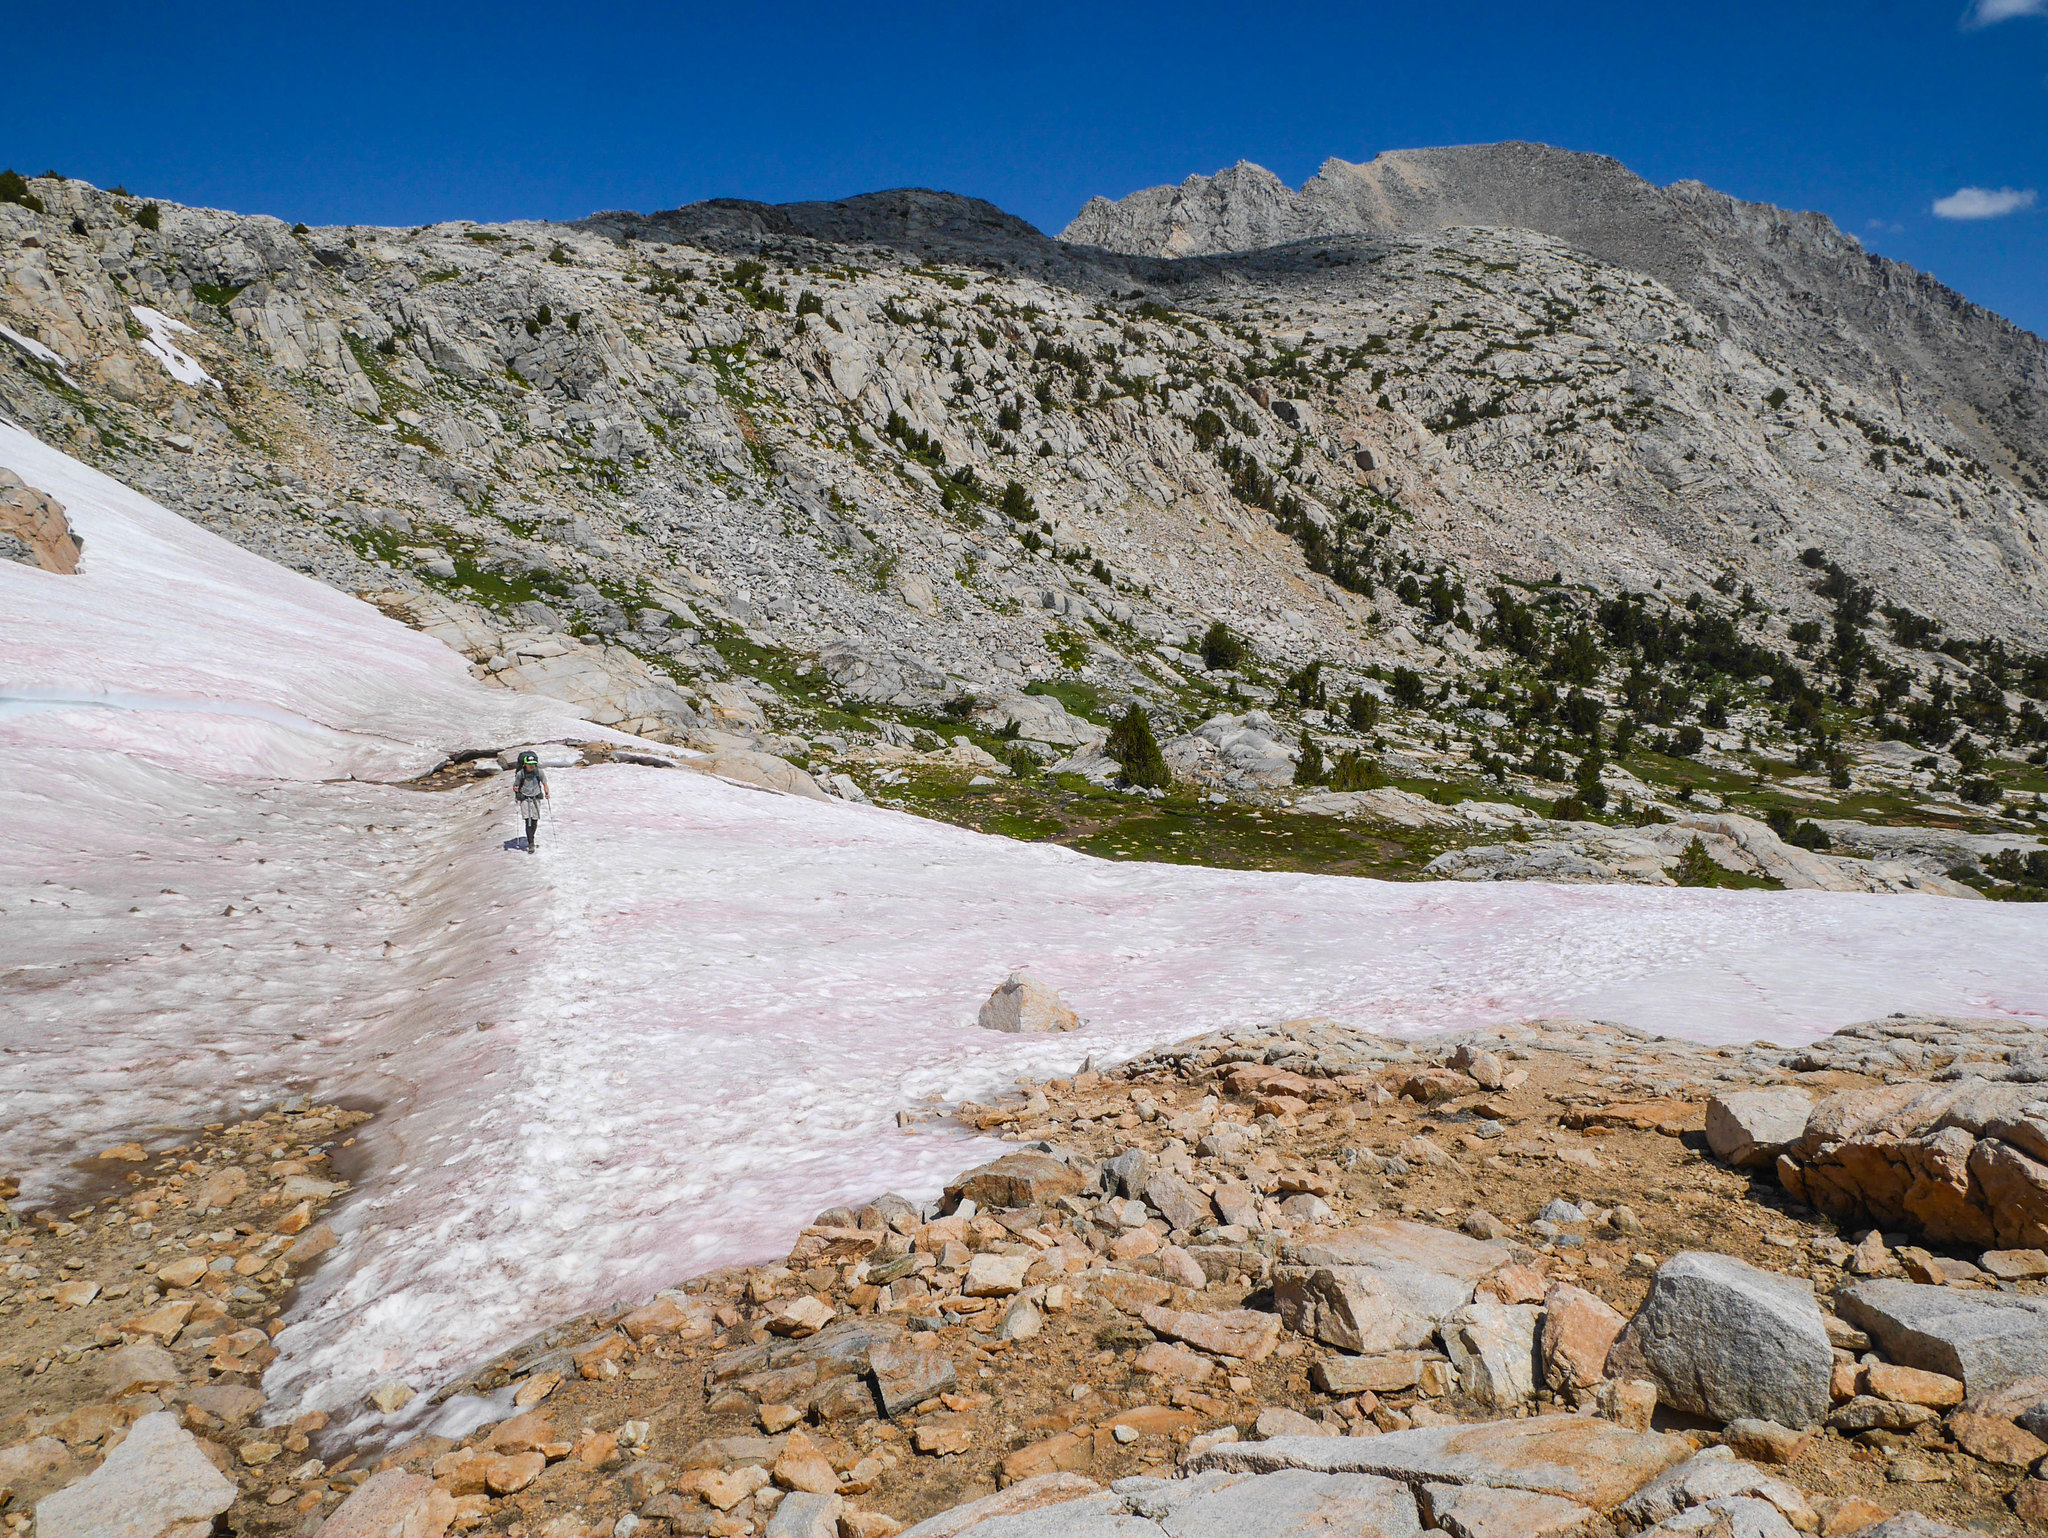 September snow below Piute pass